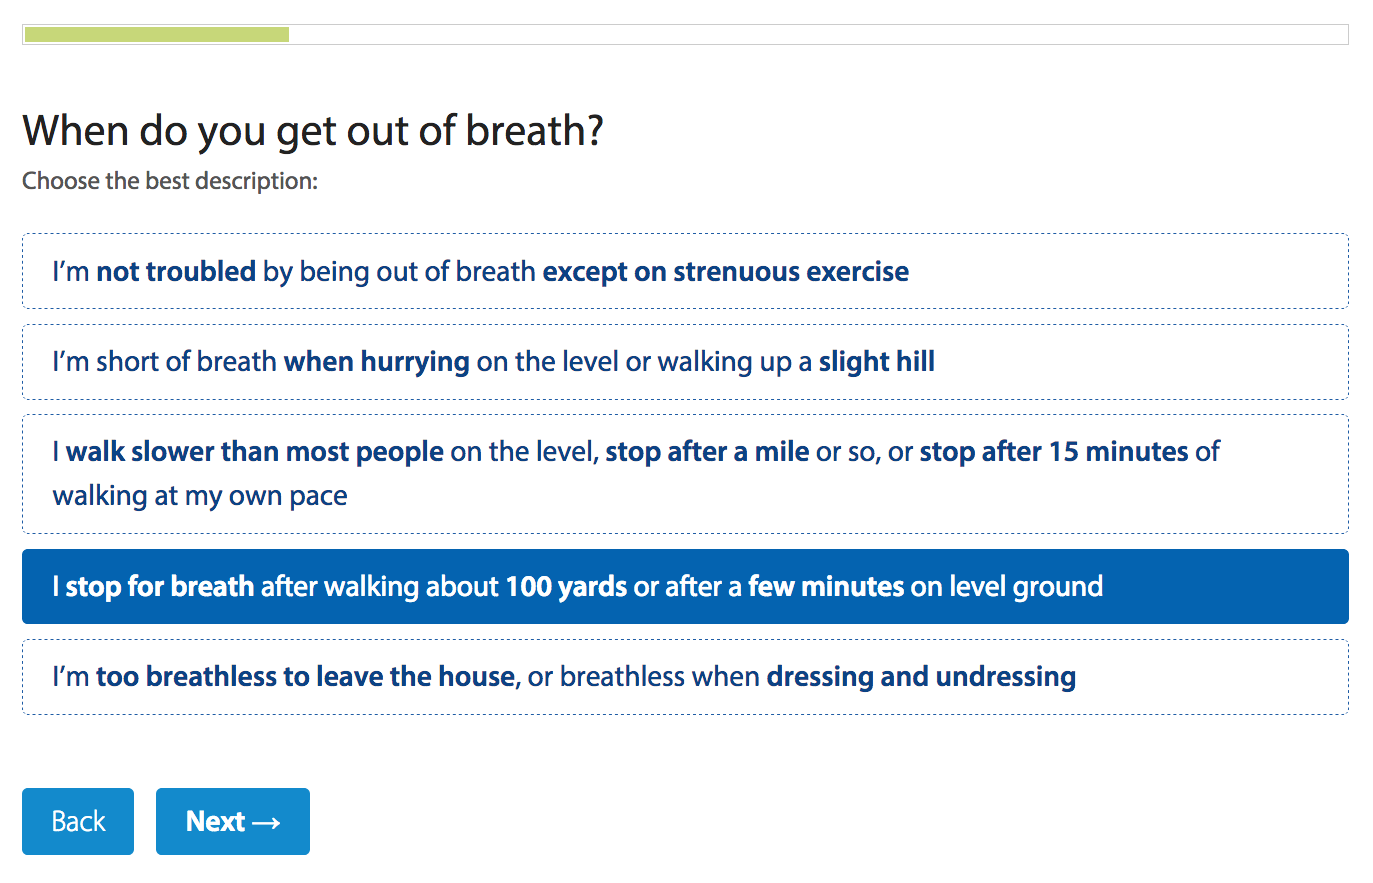 Medical Research Council breathlessness options